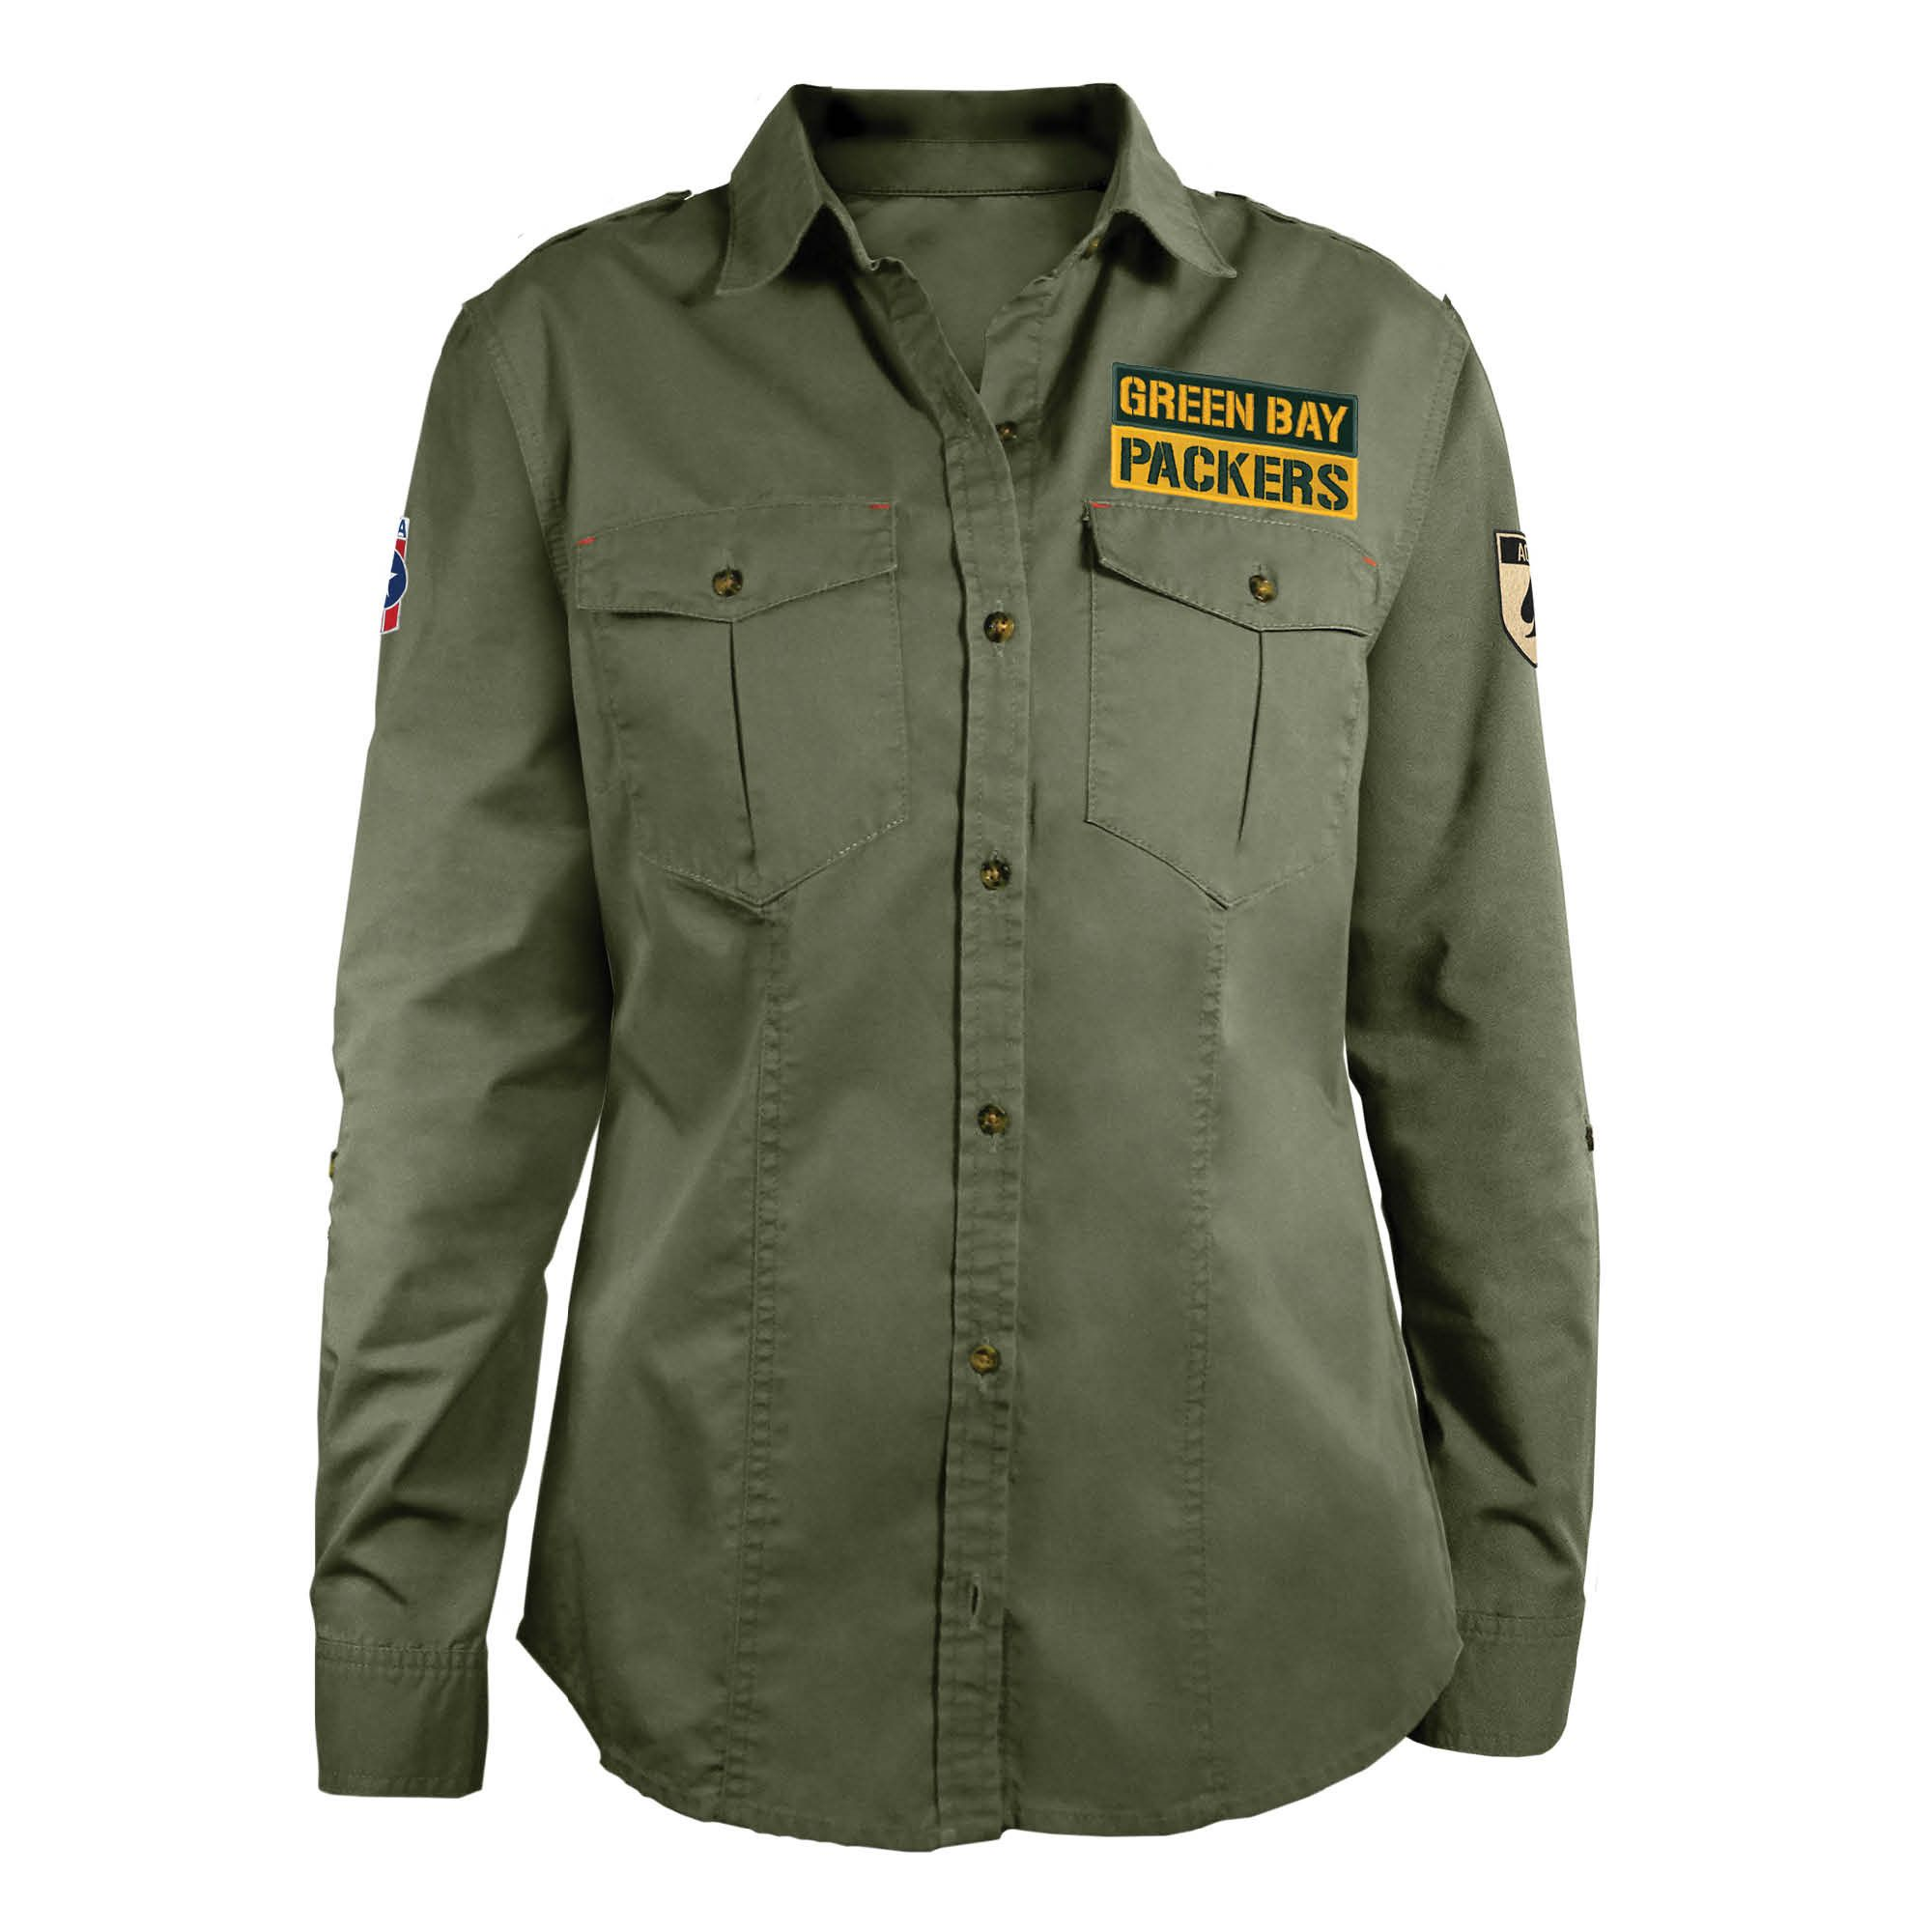 8bb6eb23 Green Bay Packers Women's Military Shirt. Standard women's sizes. #greenbay  #packers #nfl #military